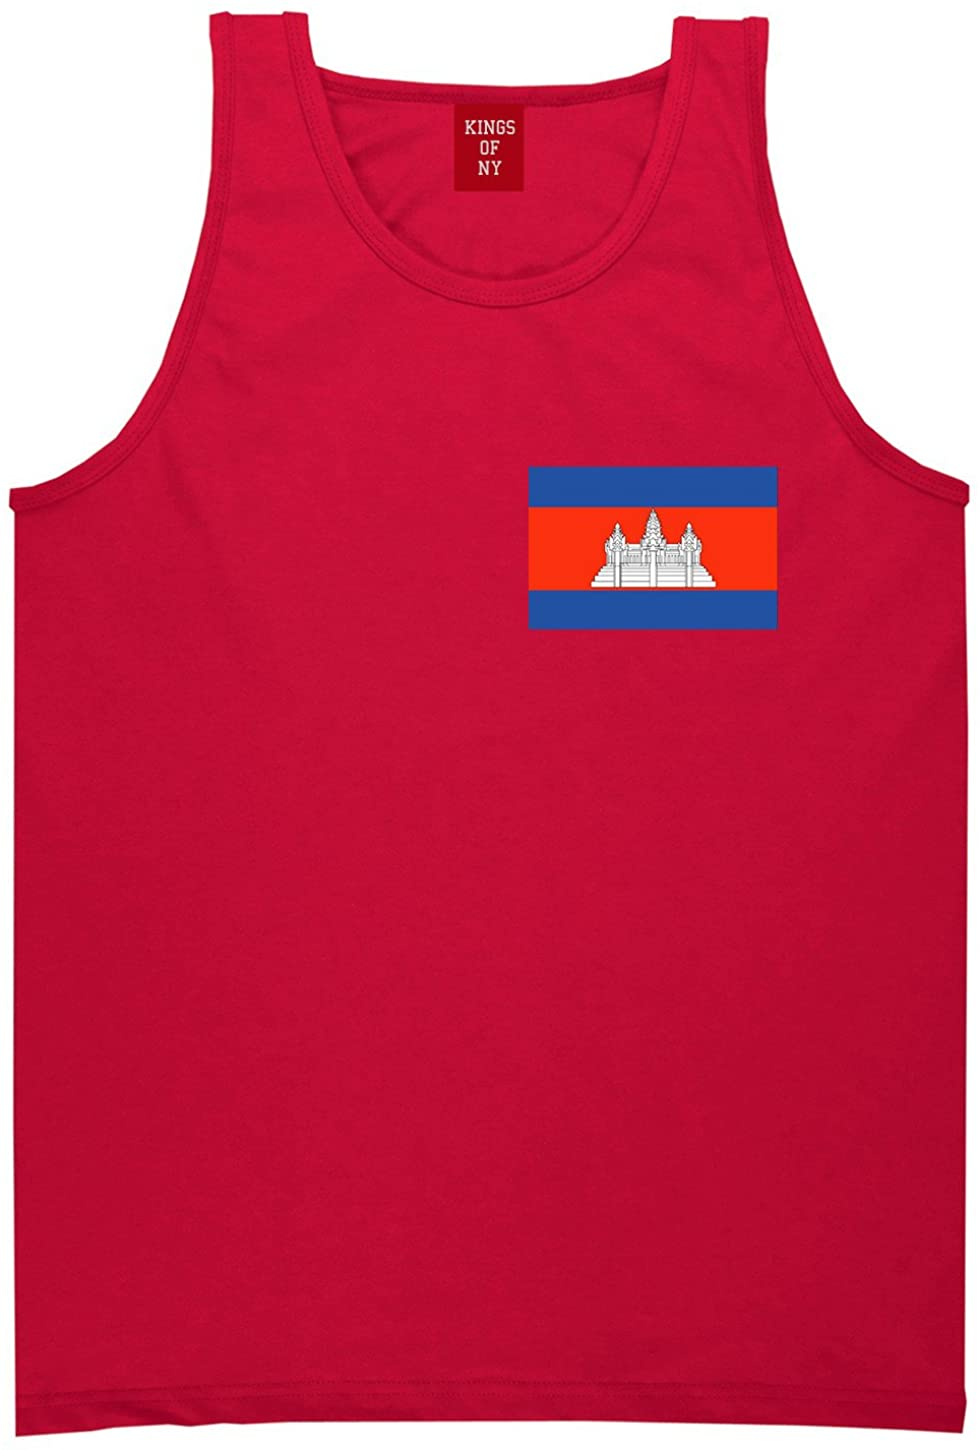 Kings Of NY Cambodia Flag Country Chest Tank Top Shirt